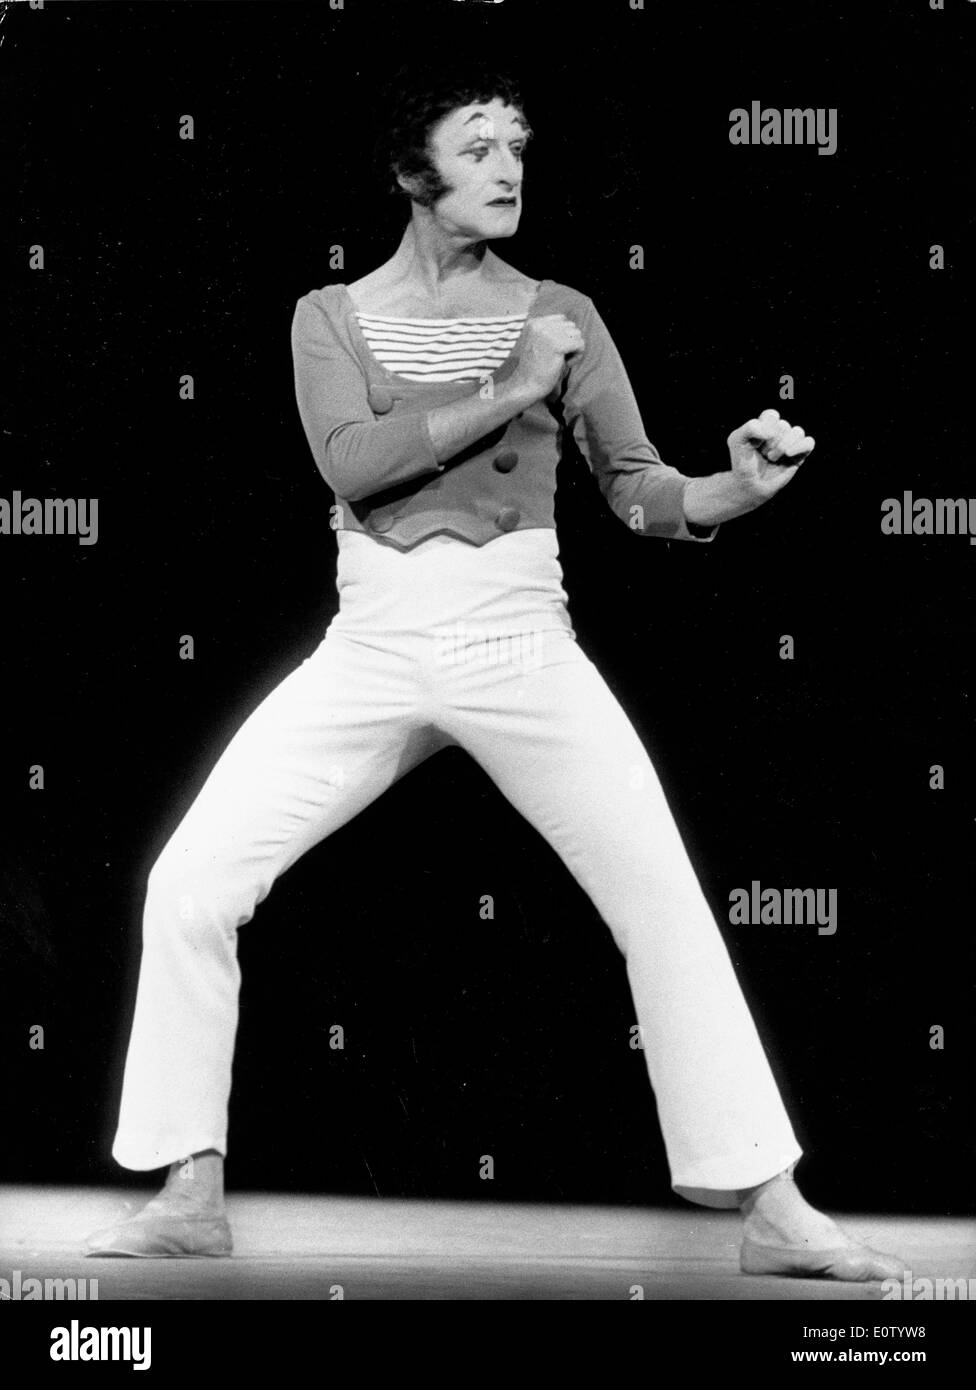 Marcel Marceau miming on stage - Stock Image